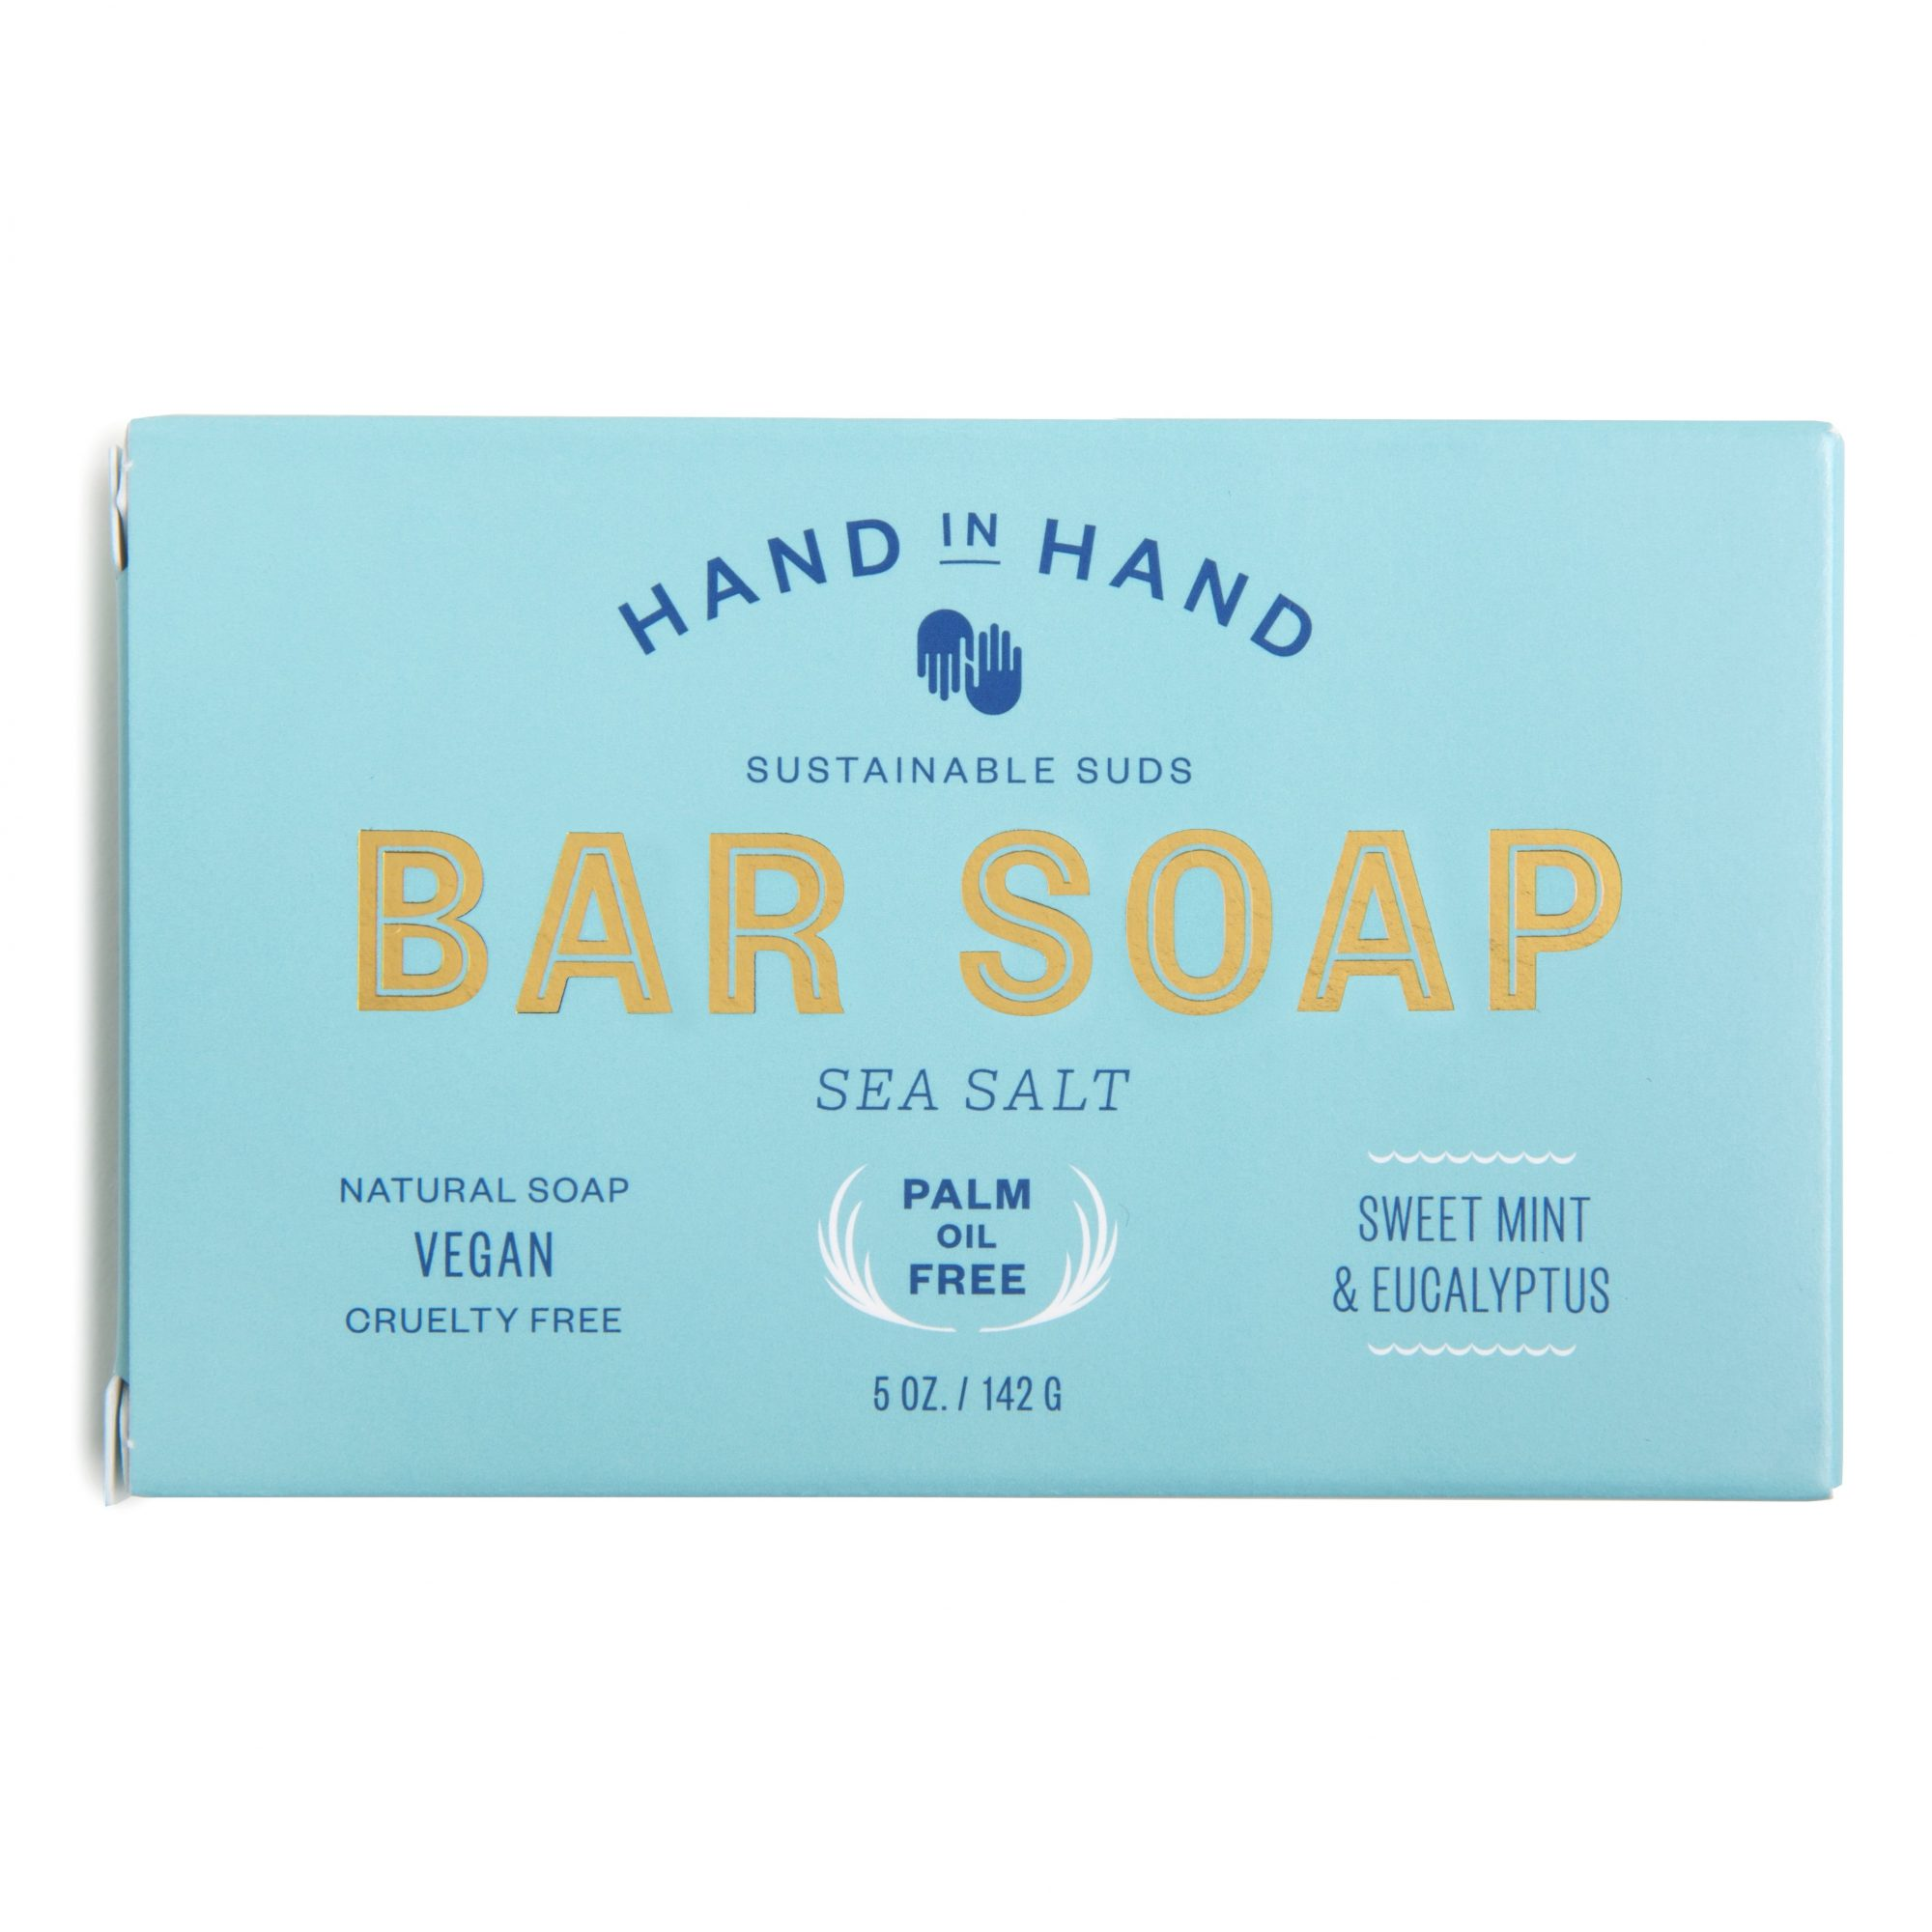 """Hand in Hand is a sustainable soap company with the motto, """"Buy a bar. Give a bar."""" For every soap bar purchased, they donate a bar to people and organizations in Haiti. Shea and cocoa butters moisturize, while sweet mint and eucalyptus add a lovely scent."""